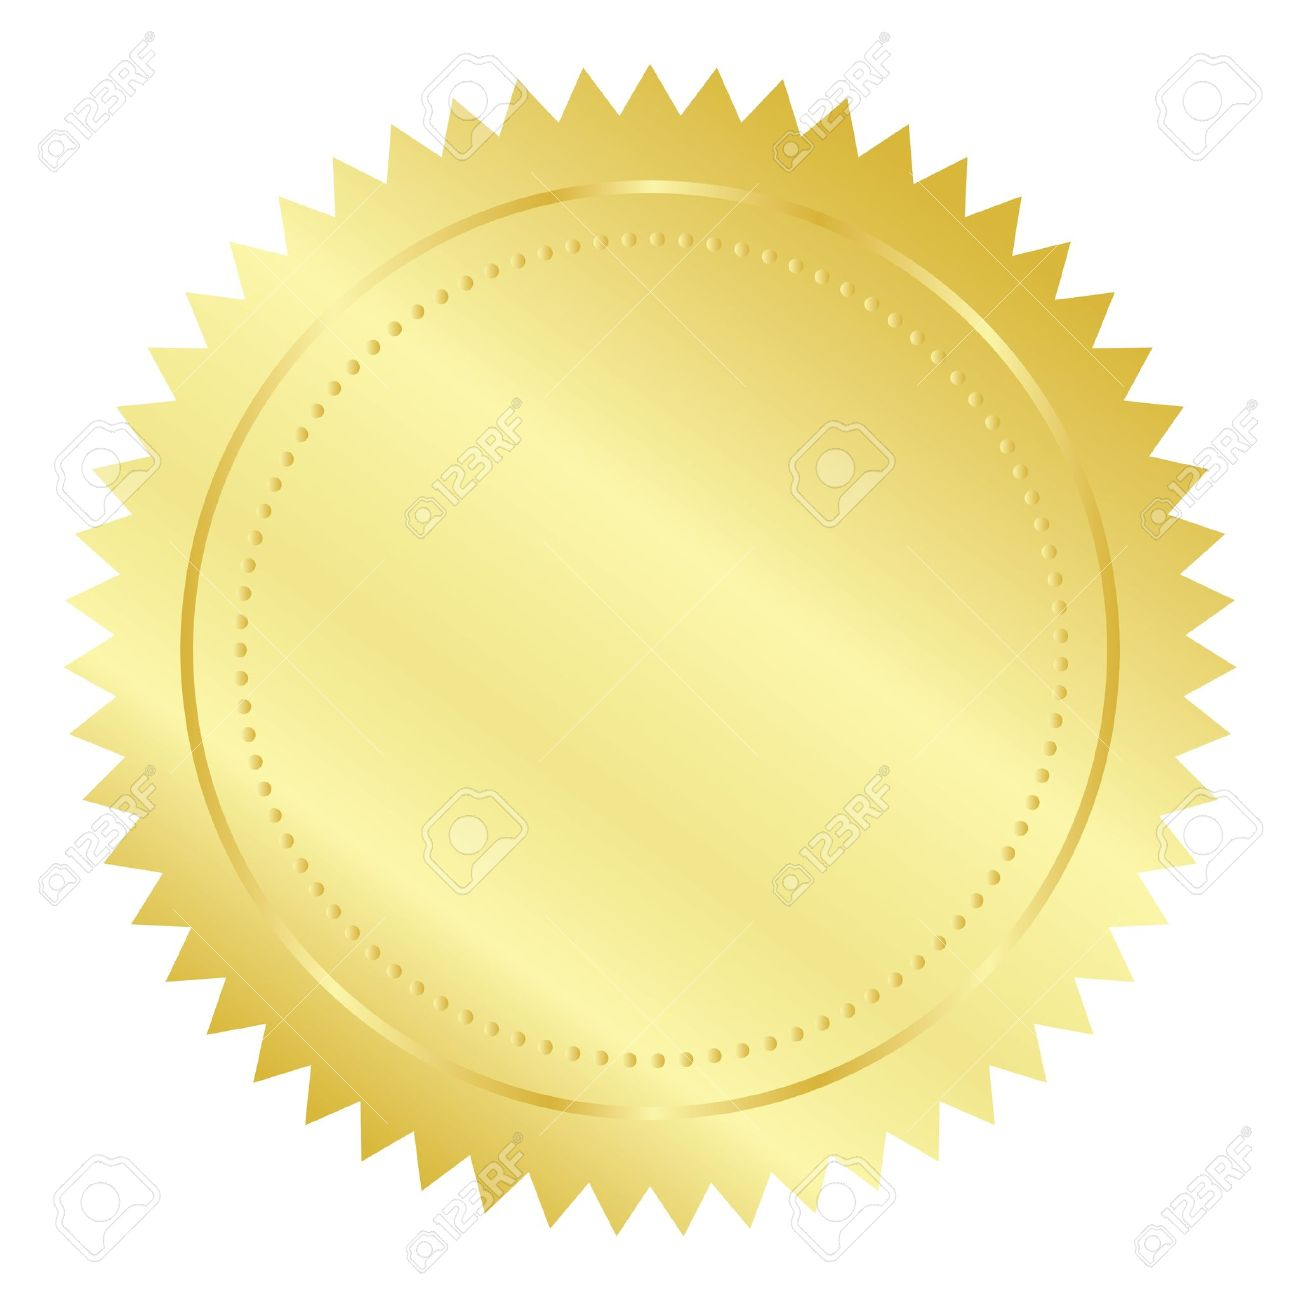 Vector illustration of gold seal.